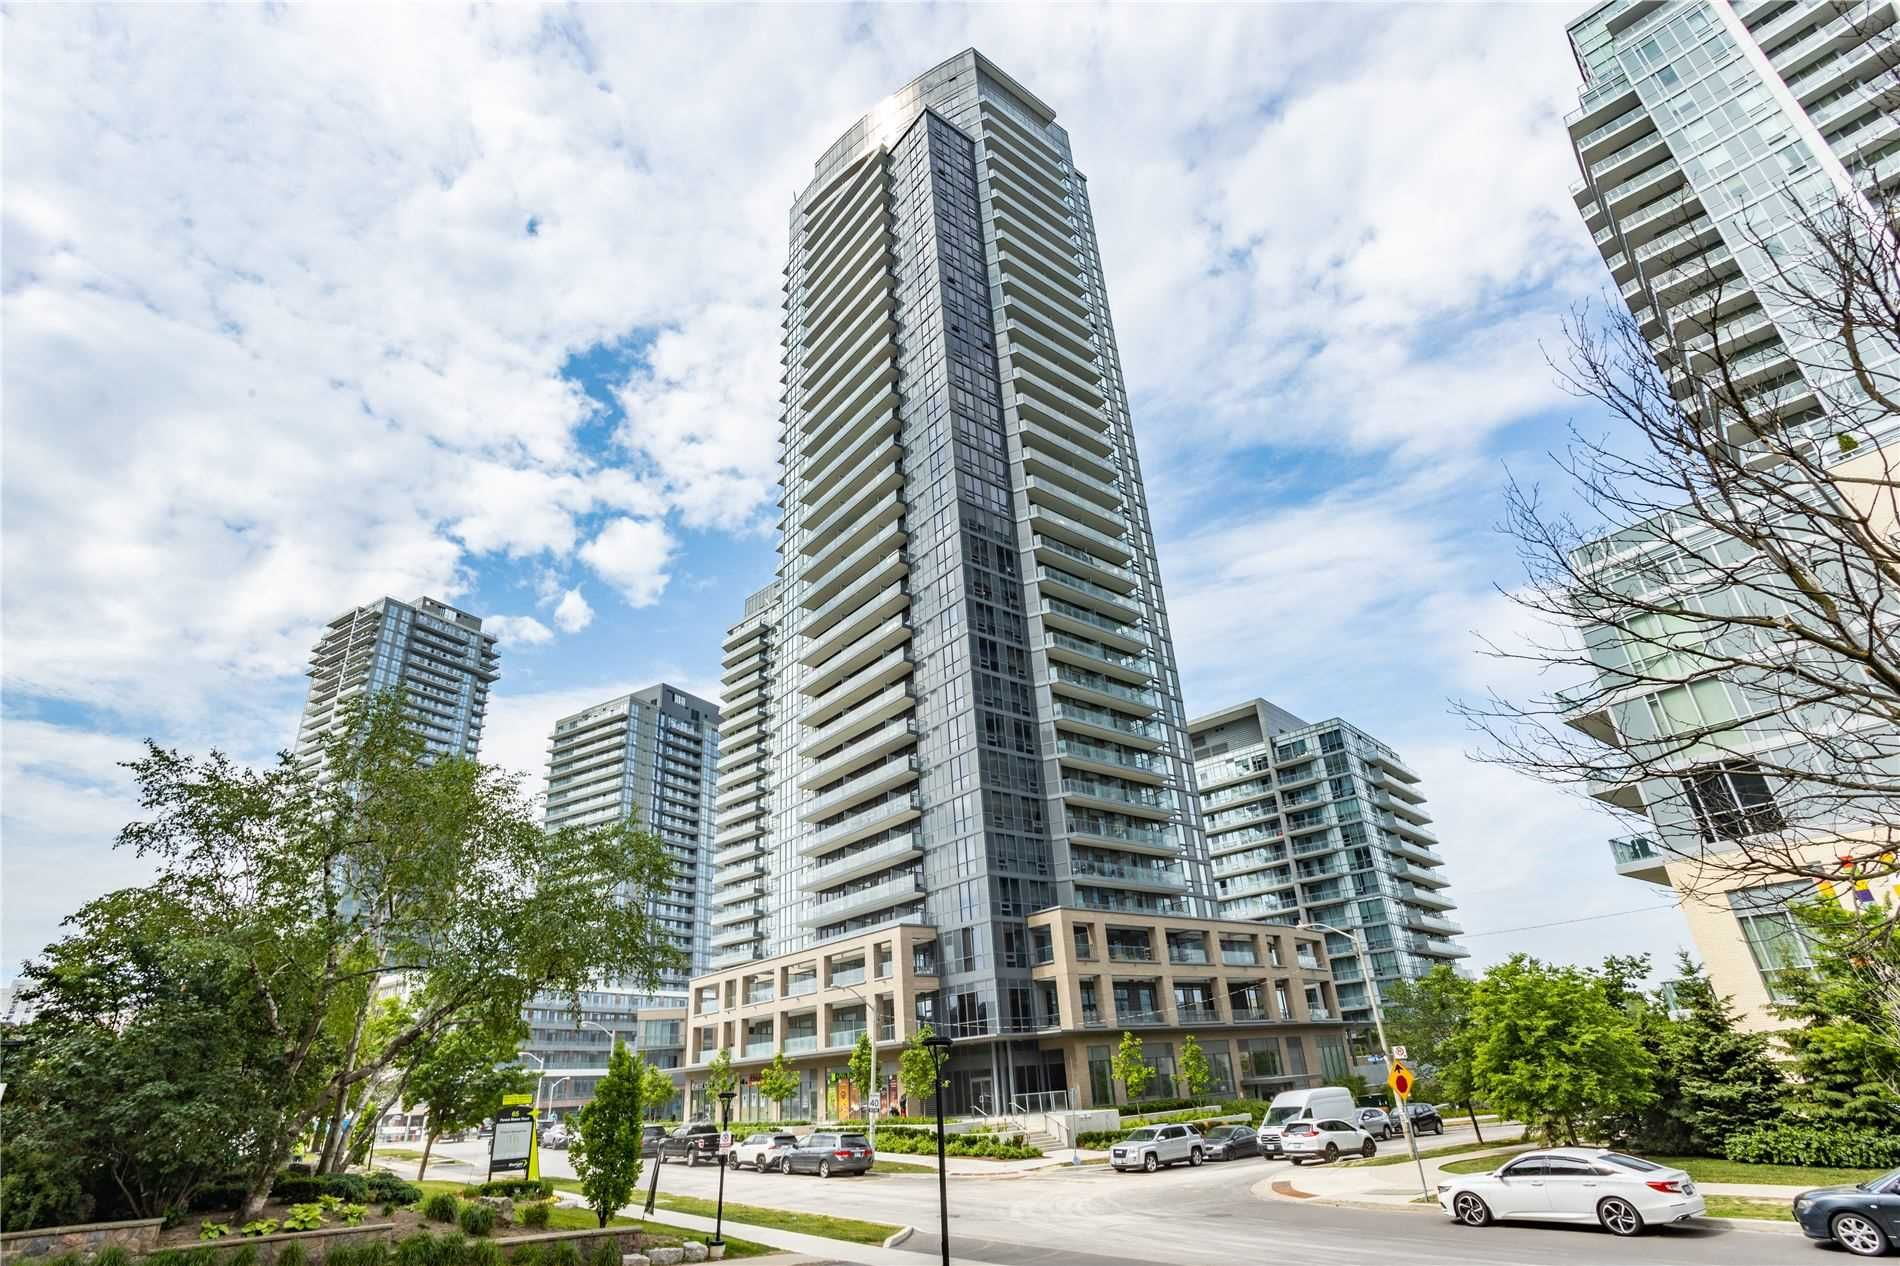 56 Forest Manor Rd, unit 1603 for rent in Toronto - image #1